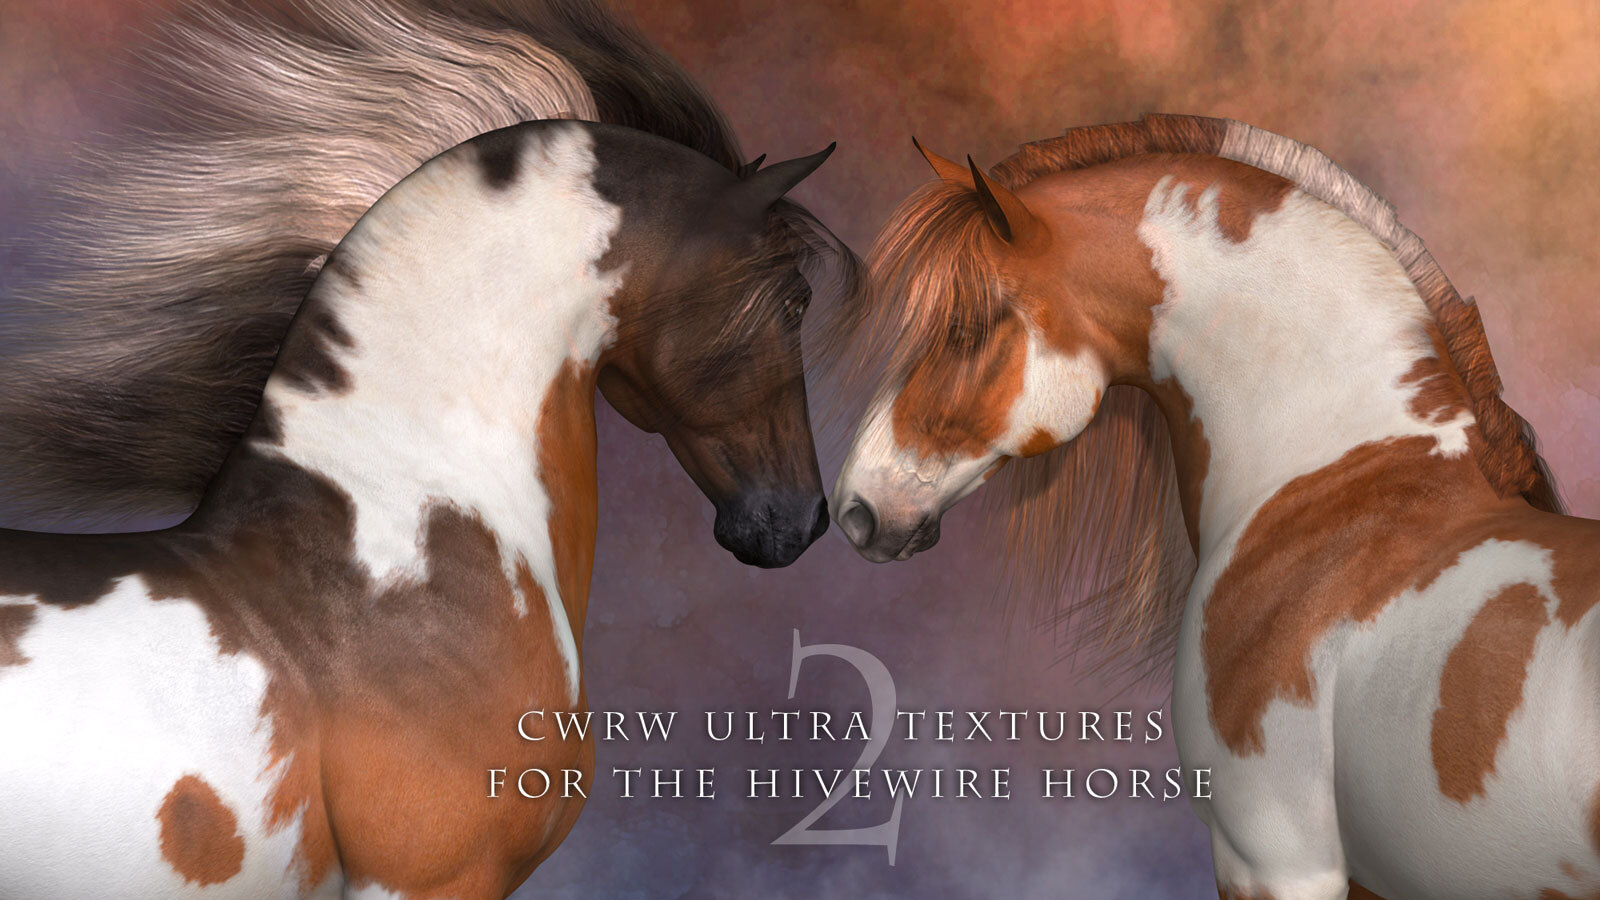 CWRW Ultra Textures for the HiveWire Horse Pack 2